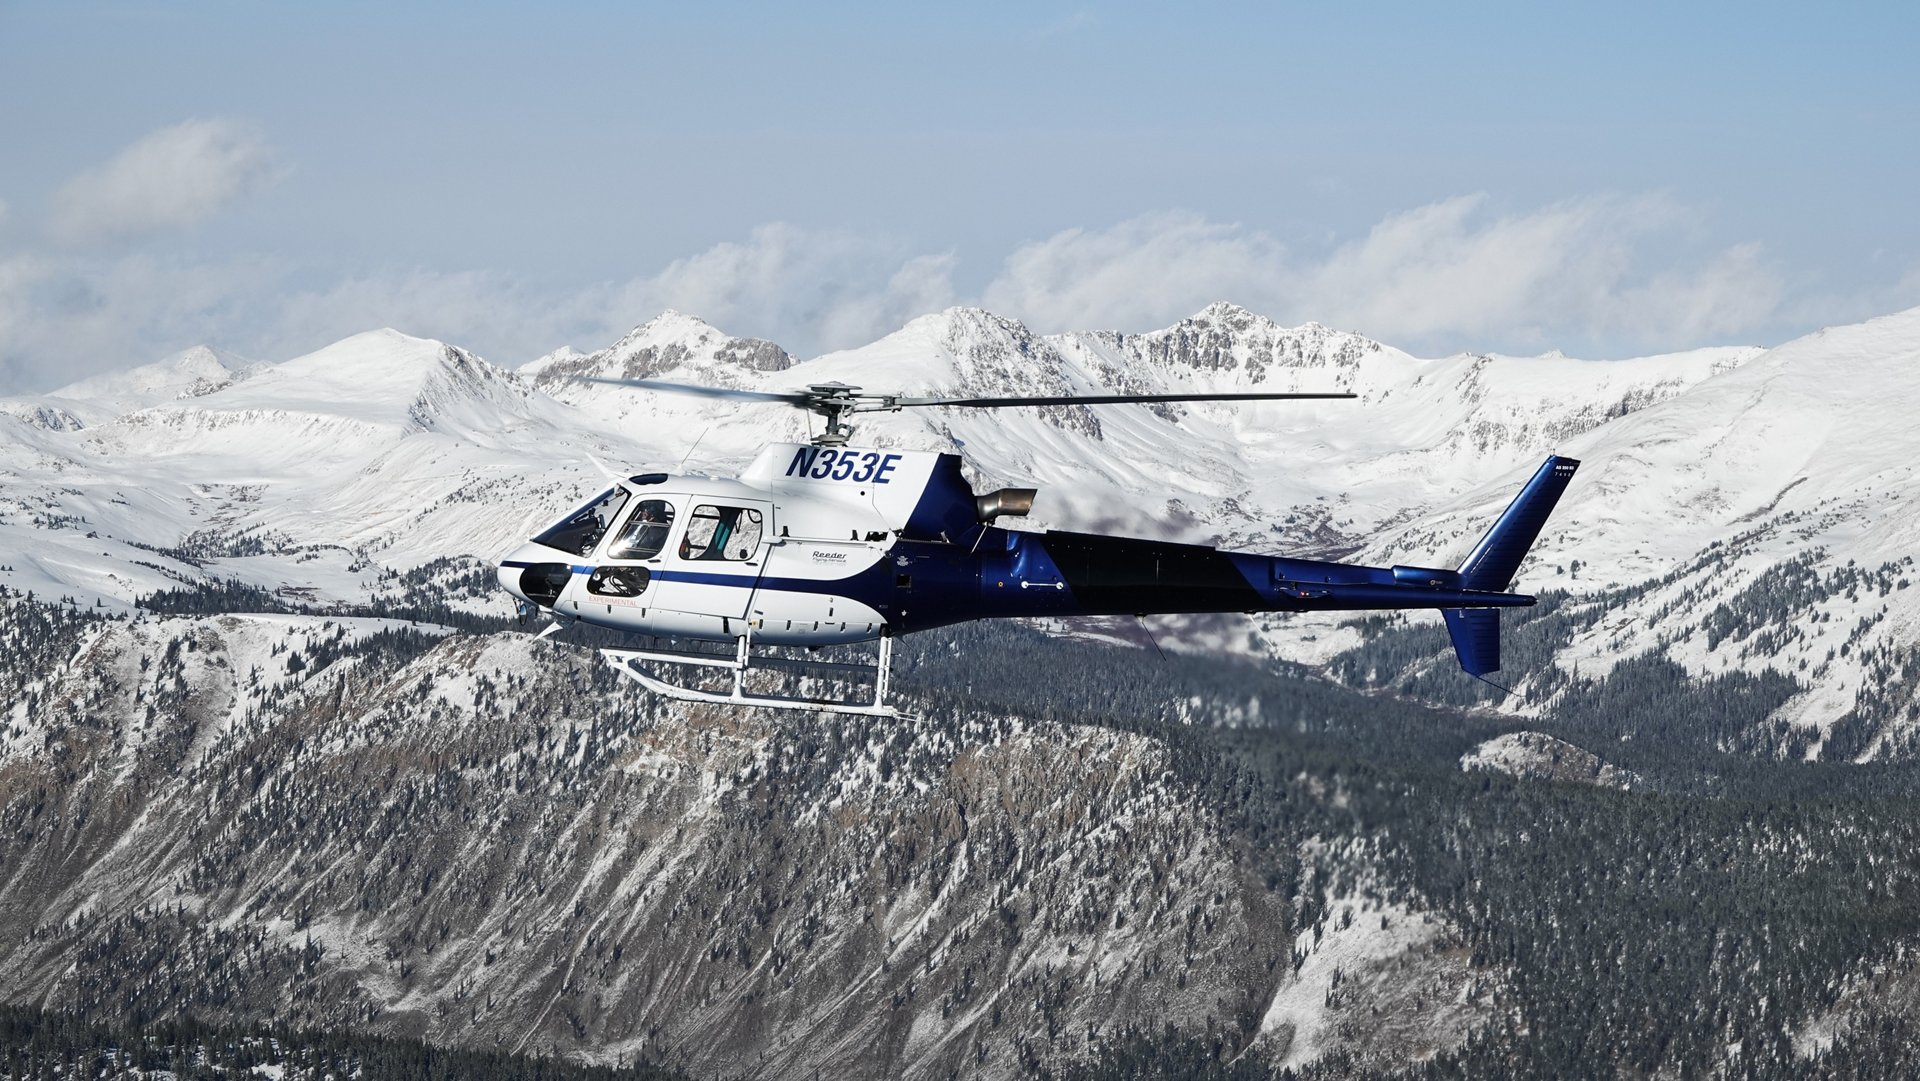 BLR has chosen to perform flight tests with the H125 in Gunnison, which is located at an elevation of more than 2,300 metres. The altitude, the cold temperatures and the Rocky Mountains provide the ideal setting to put the FastFin system to the test.